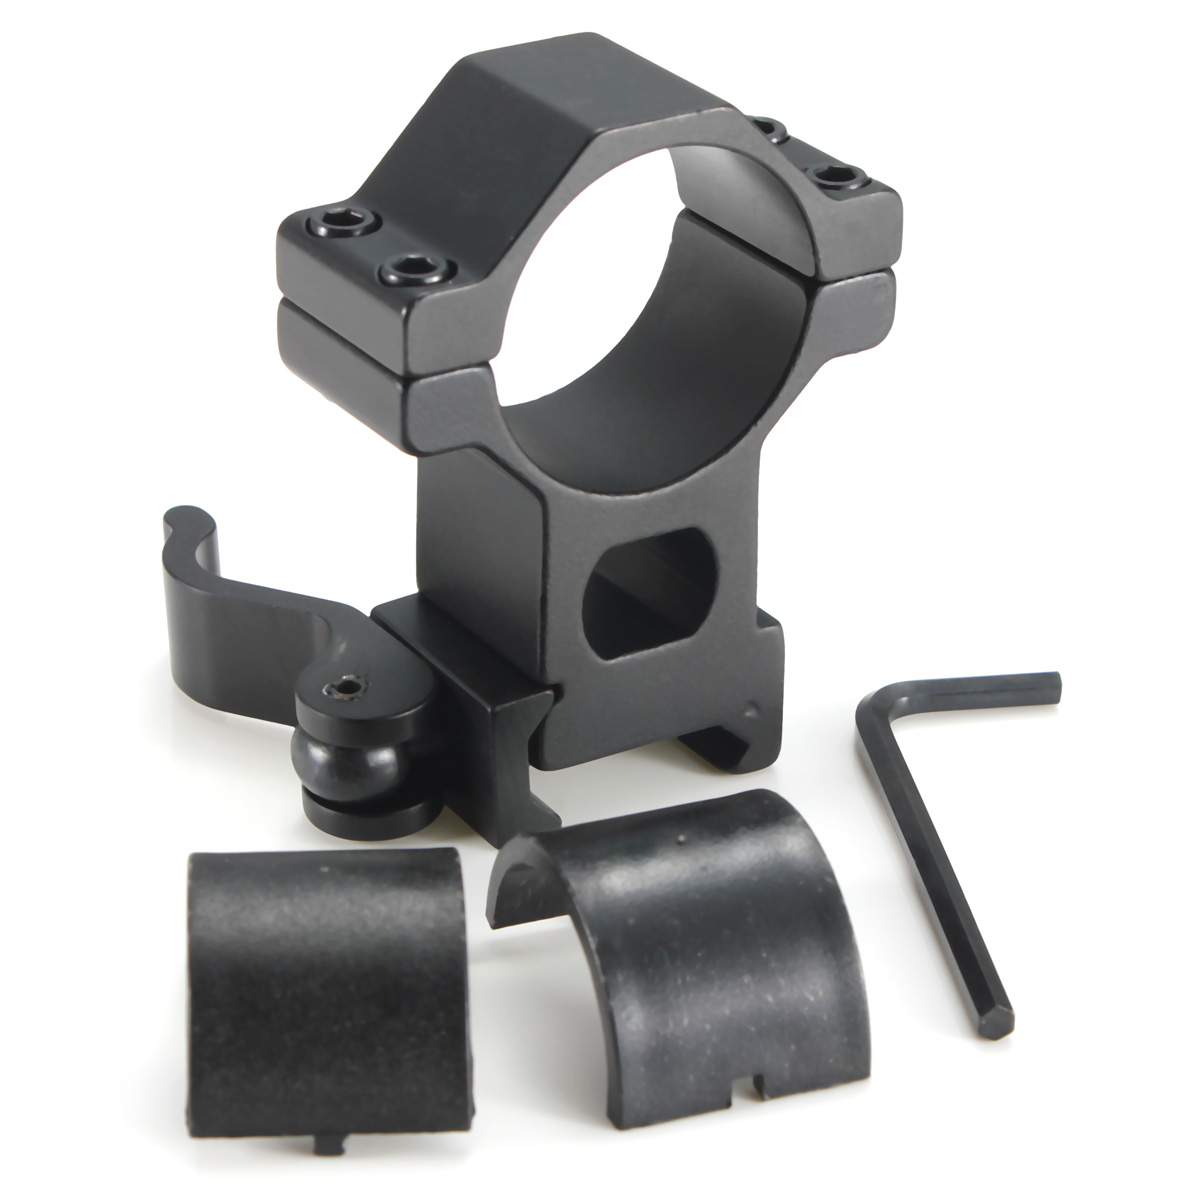 Excellent quality Tactical High Profile 30mm Scope Rings Weaver Picatinny Rail Mount For Rifle+25mm Scope Ring Adapter+Wrench